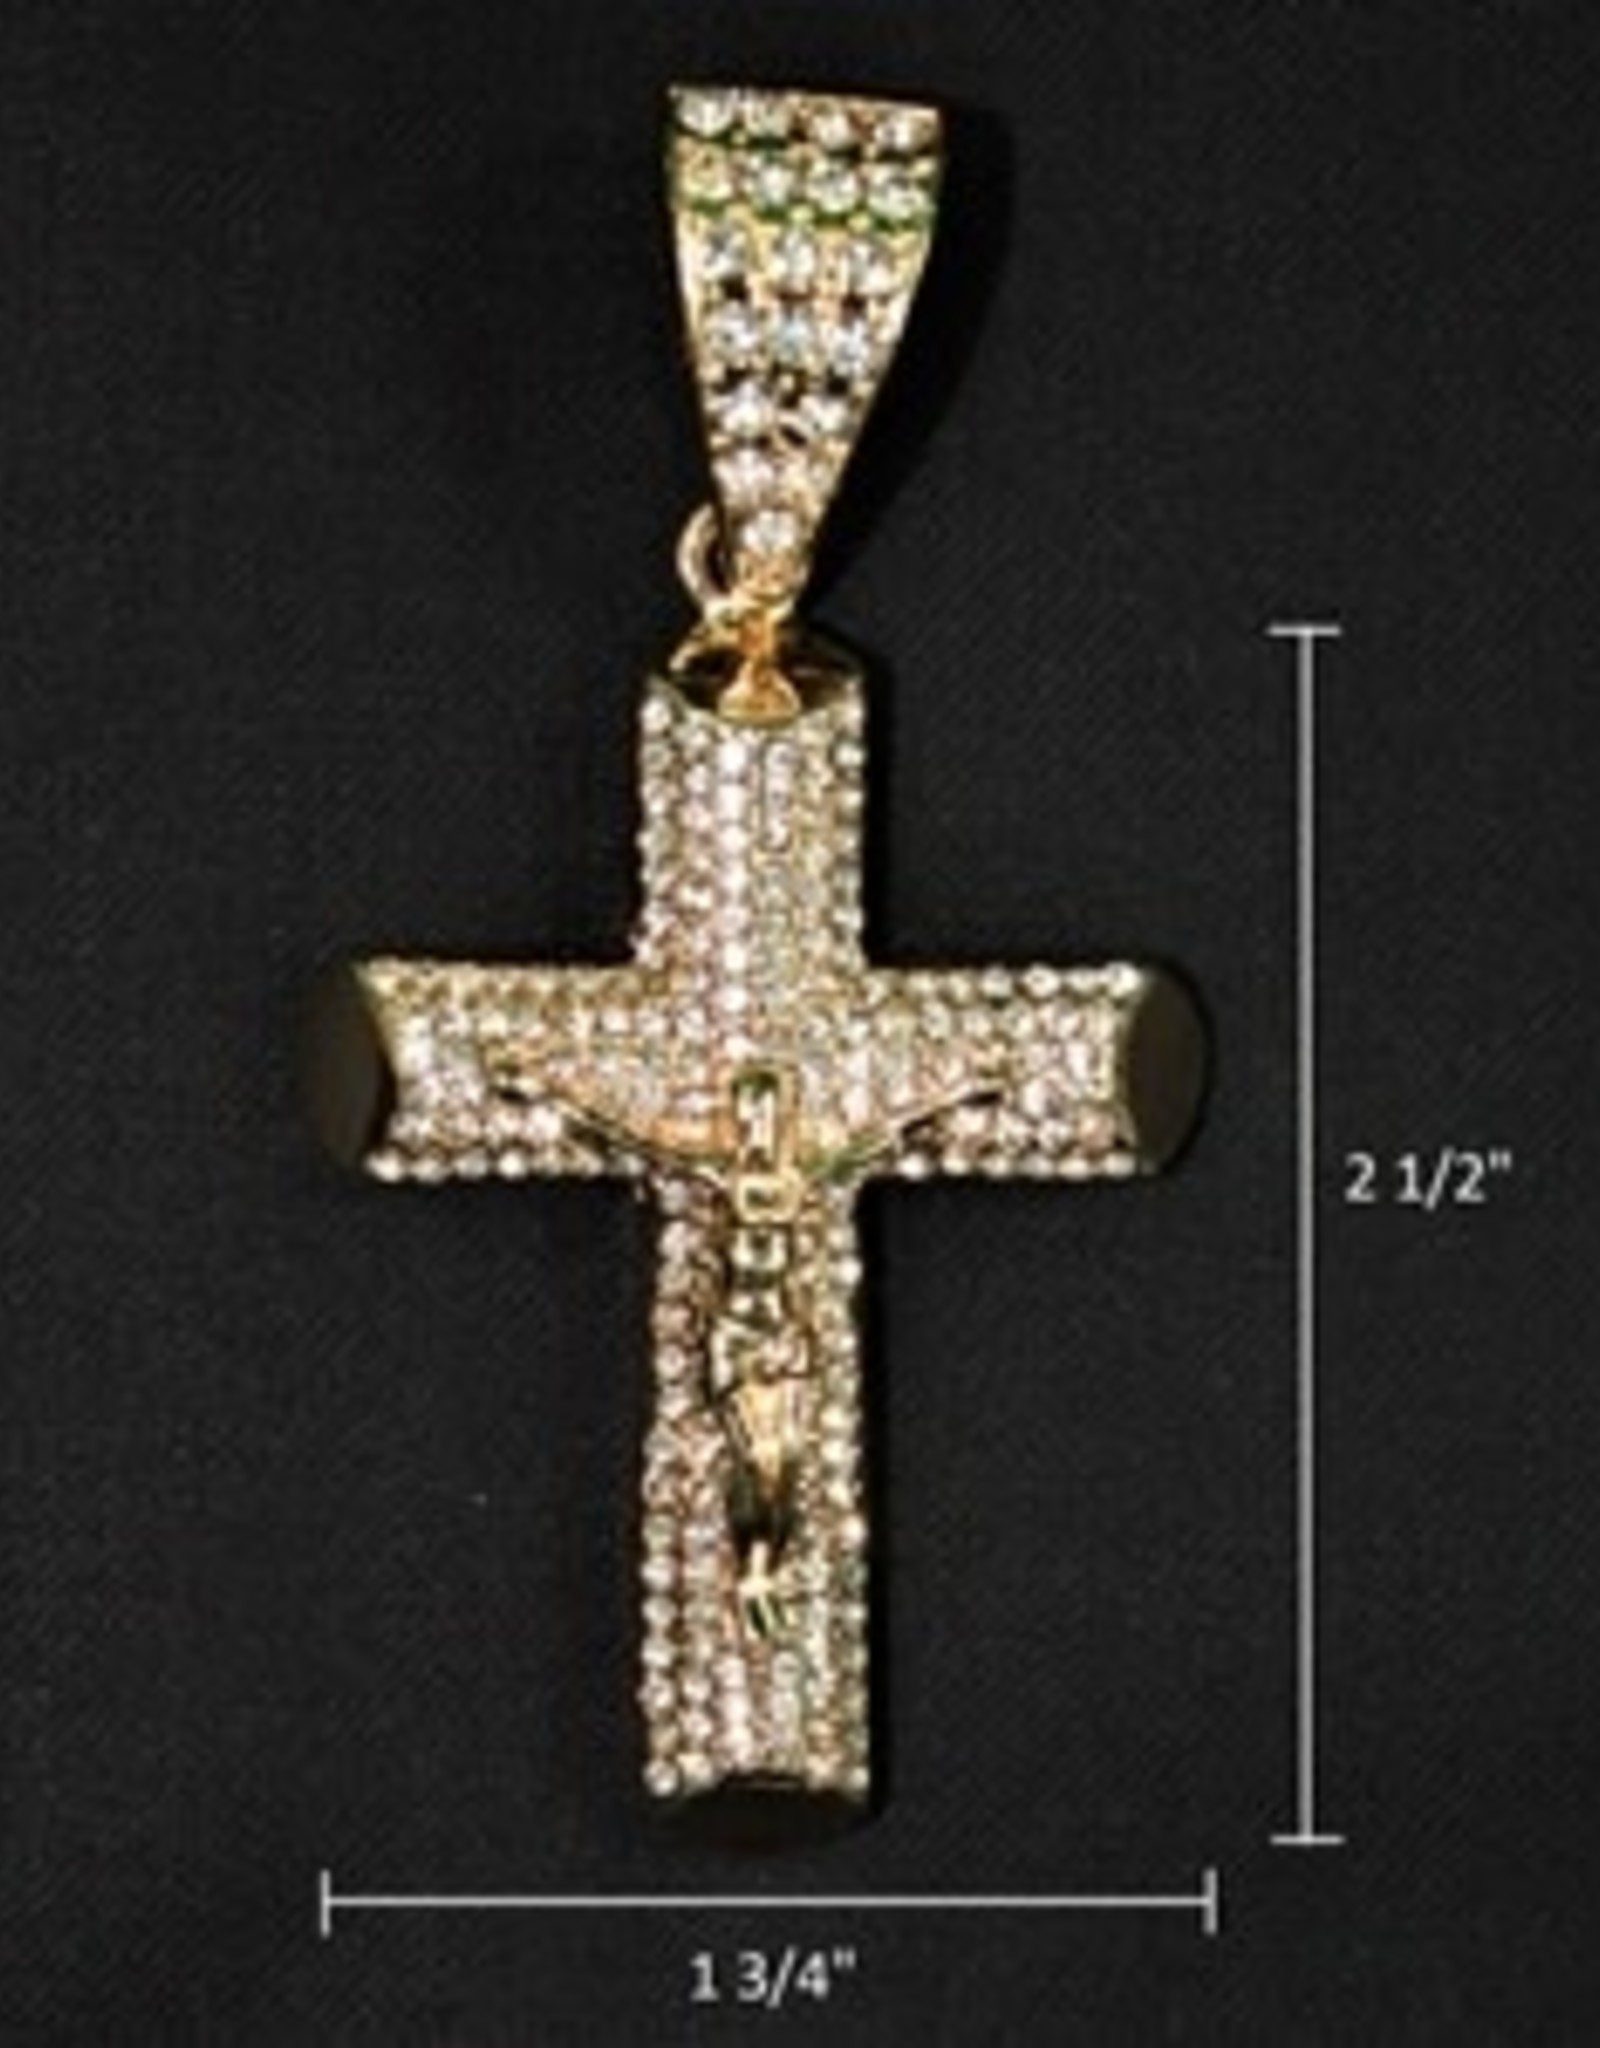 Zuha Trend Cross Crucify Pose Gold with 128 Crystal Dimond Size 2 1/2 By 1 3/4